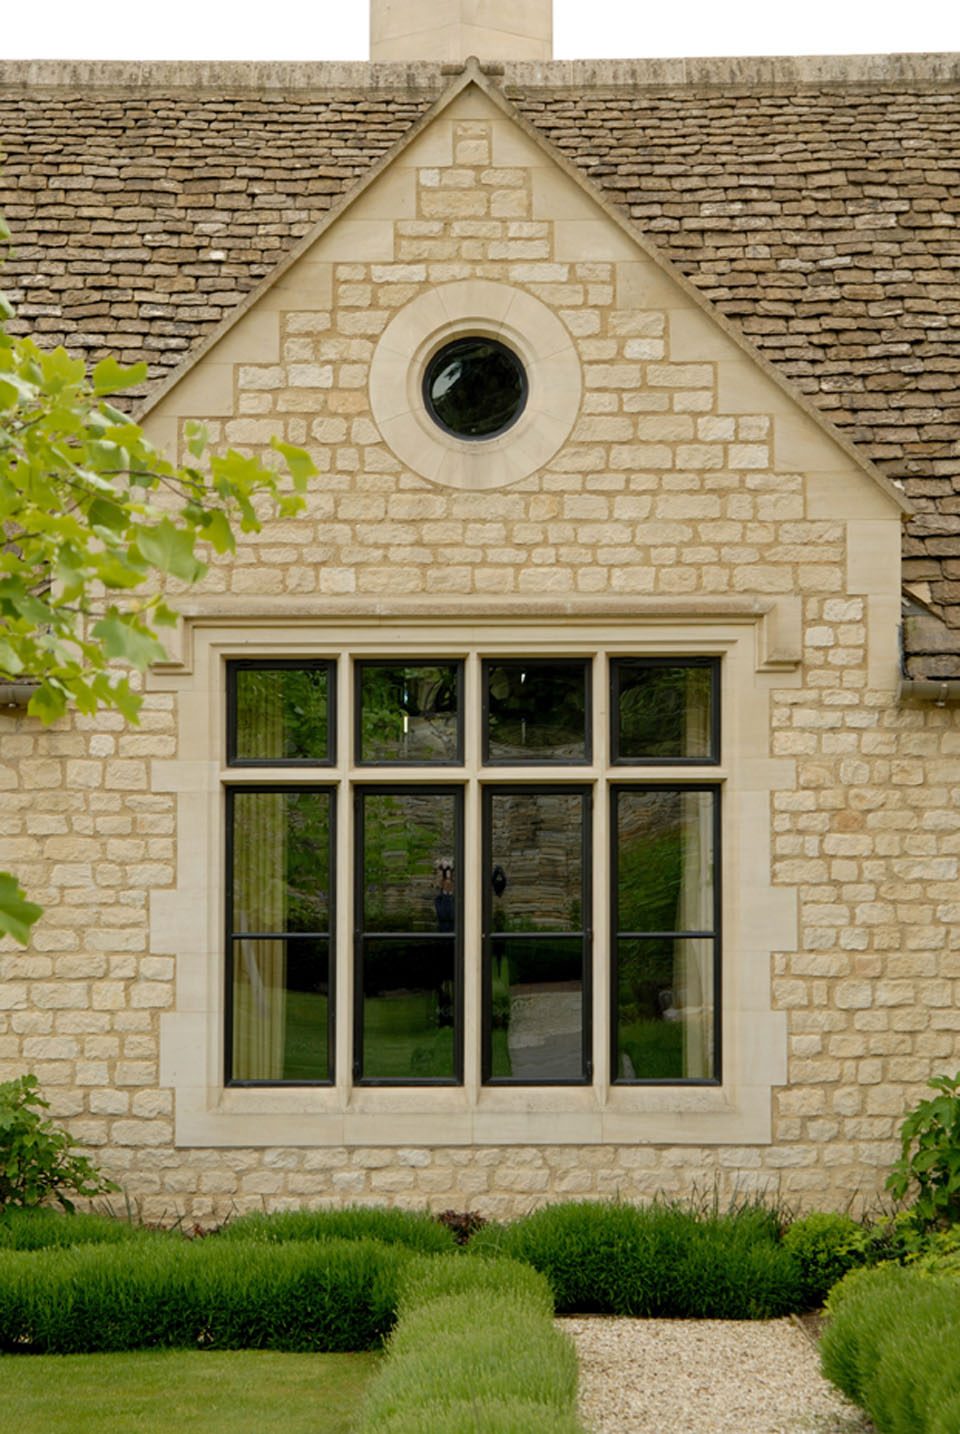 Mullions On Windows Syreford Quarries And Masonry Gallery